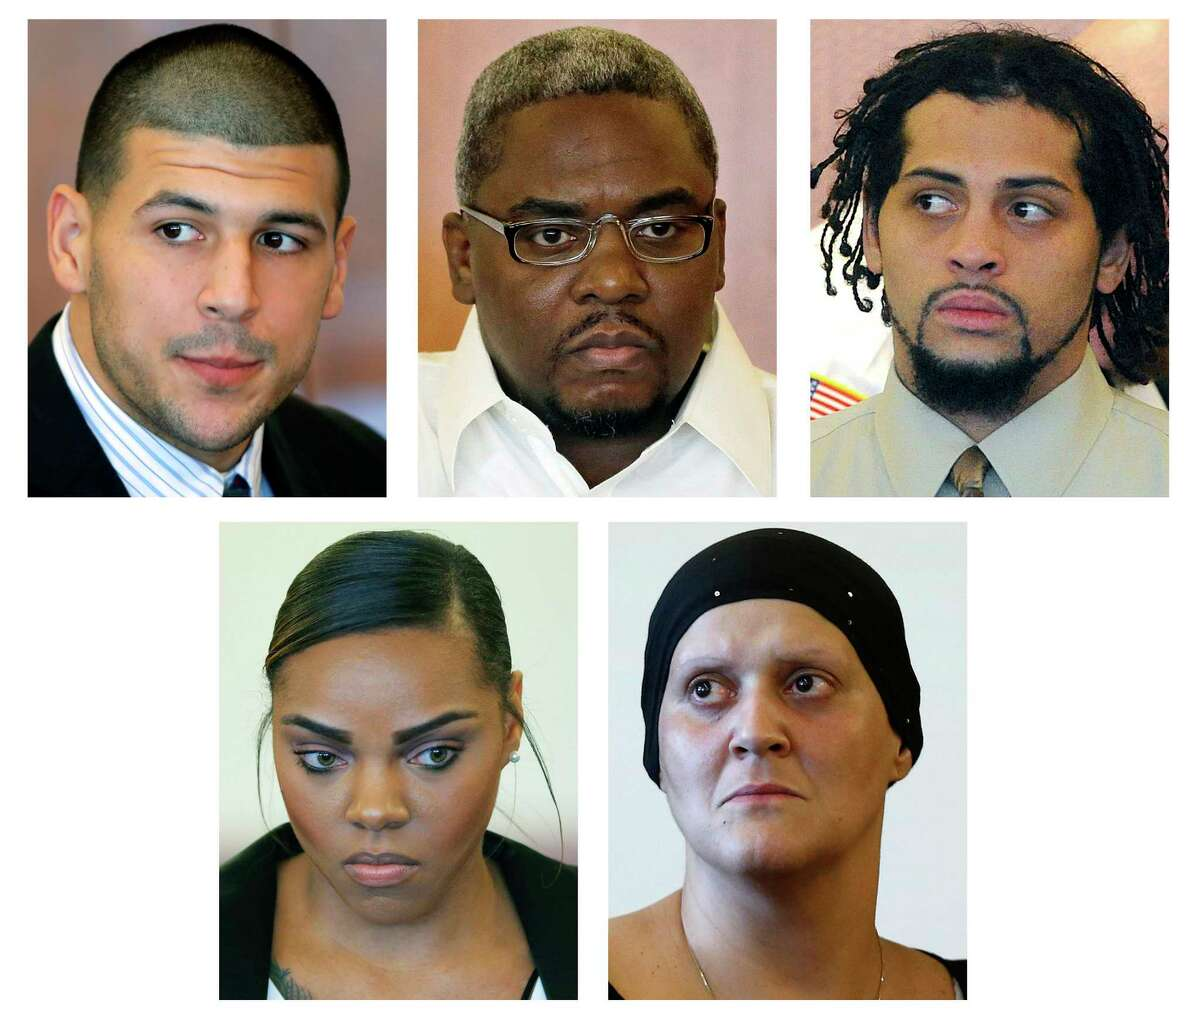 This panel of file photos shows some of those who are connected to the murder trial of former New England Patriots tight end Aaron Hernandez; top row from left: Aaron Hernandez; and co-defendants to be tried separately Ernest Wallace and Carlos Ortiz. Bottom row, from left; Shayanna Jenkins, Hernandezís fiancee charged with perjury; Tanya Singleton, Hernandez's cousin, charged with conspiracy to commit accessory after the fact. Jury selection begins for Hernandez's murder trial on Friday, Jan. 9, 2015, in Fall River, Mass.